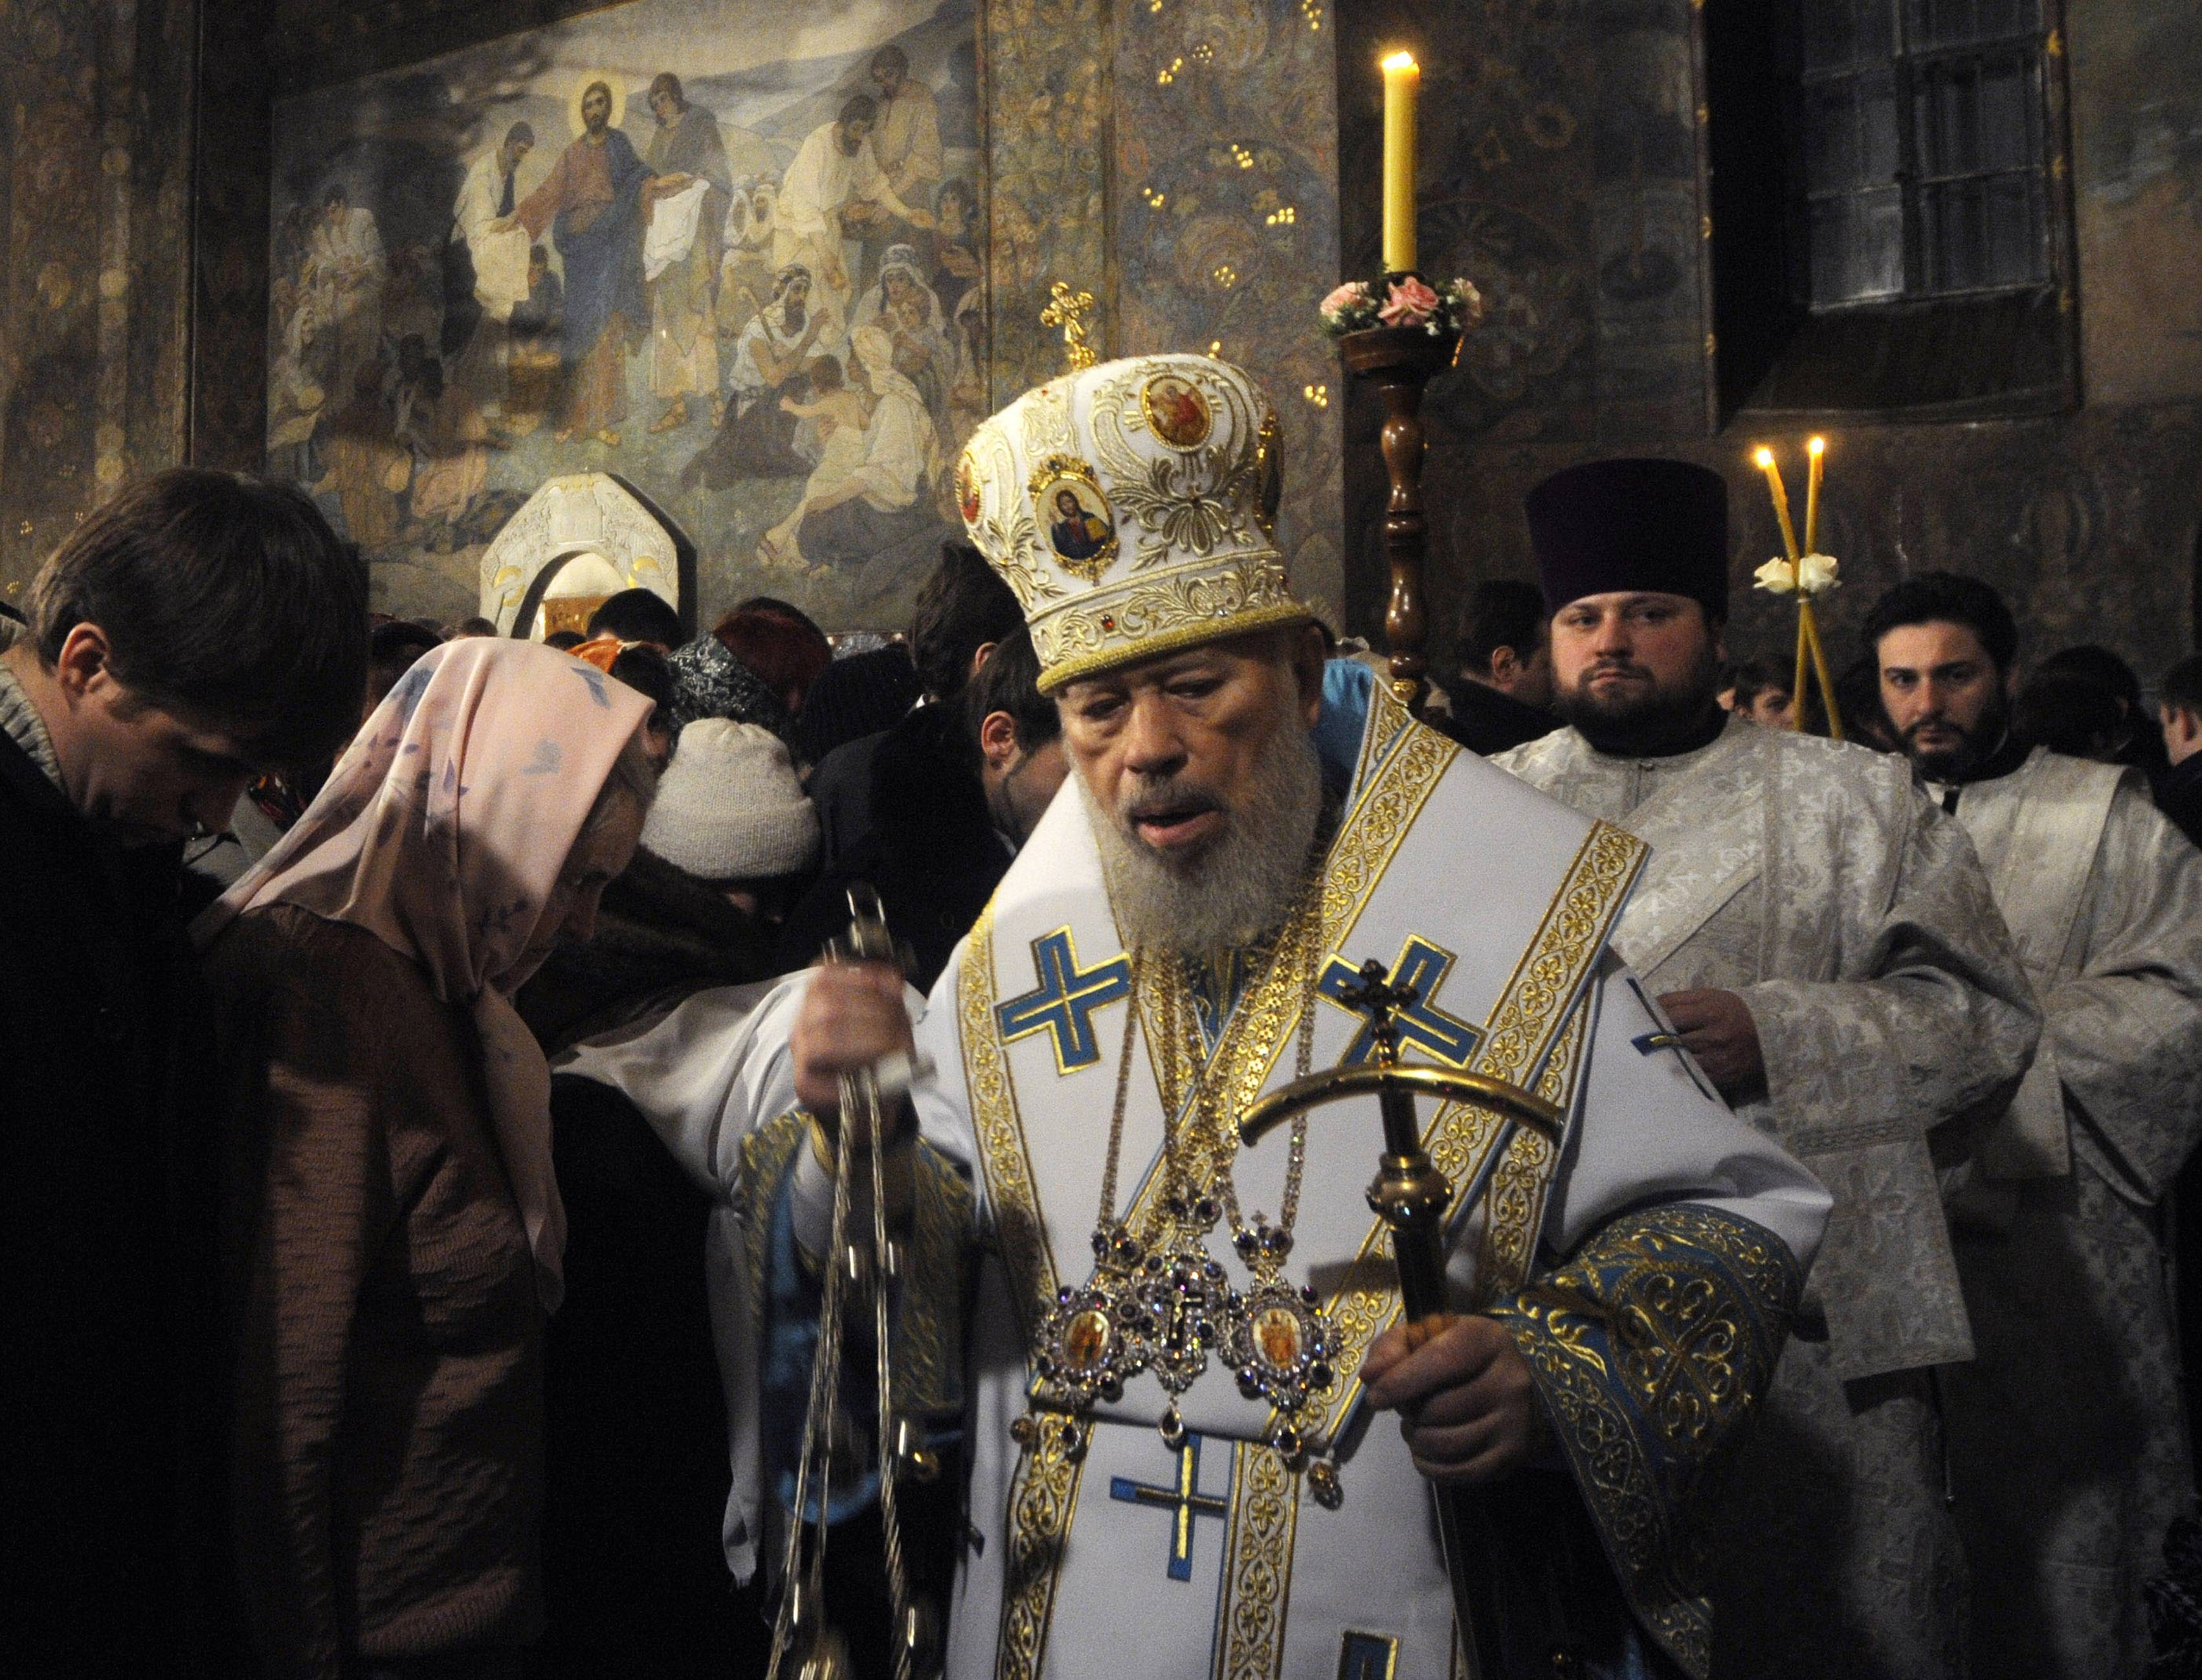 In this file photo taken on Jan. 5, the head of the Ukrainian Orthodox Church under the Moscow Patriarchate, Vladimir leads services during the Christmas Eve mass in the Kyiv-Pechersk Lavra church in Kiev, Ukraine. The head of Ukraine's Orthodox Church under the Moscow patriarchate died on Saturday, July 5, the patriarchate announced on its website. Vladimir, 78, ascended to the leadership of the Ukrainian Orthodox Church following the schism, during which its previous head was defrocked. Vladimir suffered from internal bleeding and had been treated at a clinic in Kiev, Interfax reported.